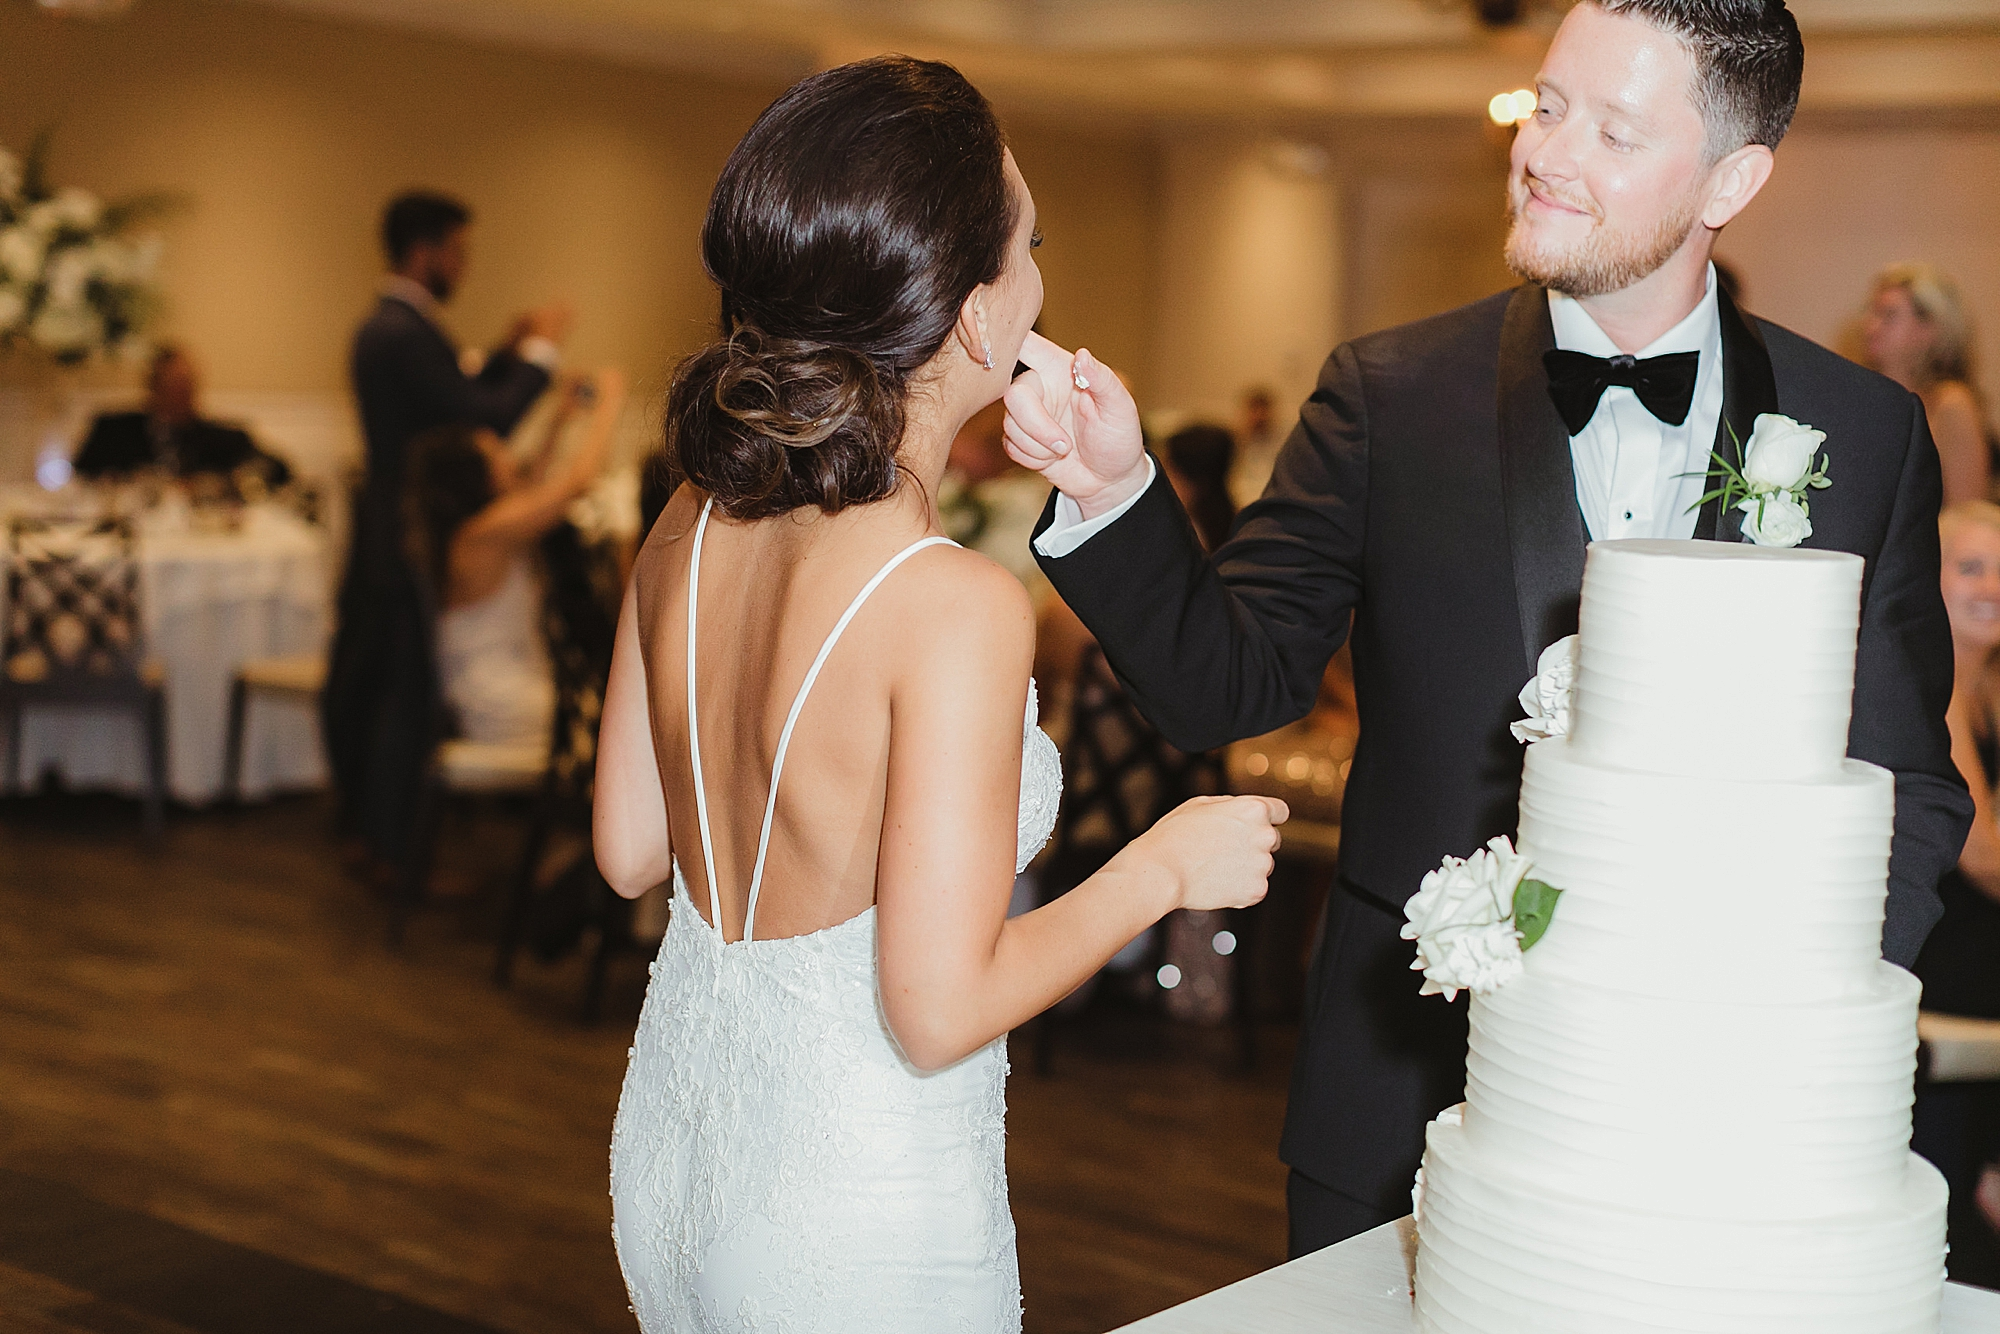 Candid and Stylish South Jersey Wedding Photography by Magdalena Studios 0068